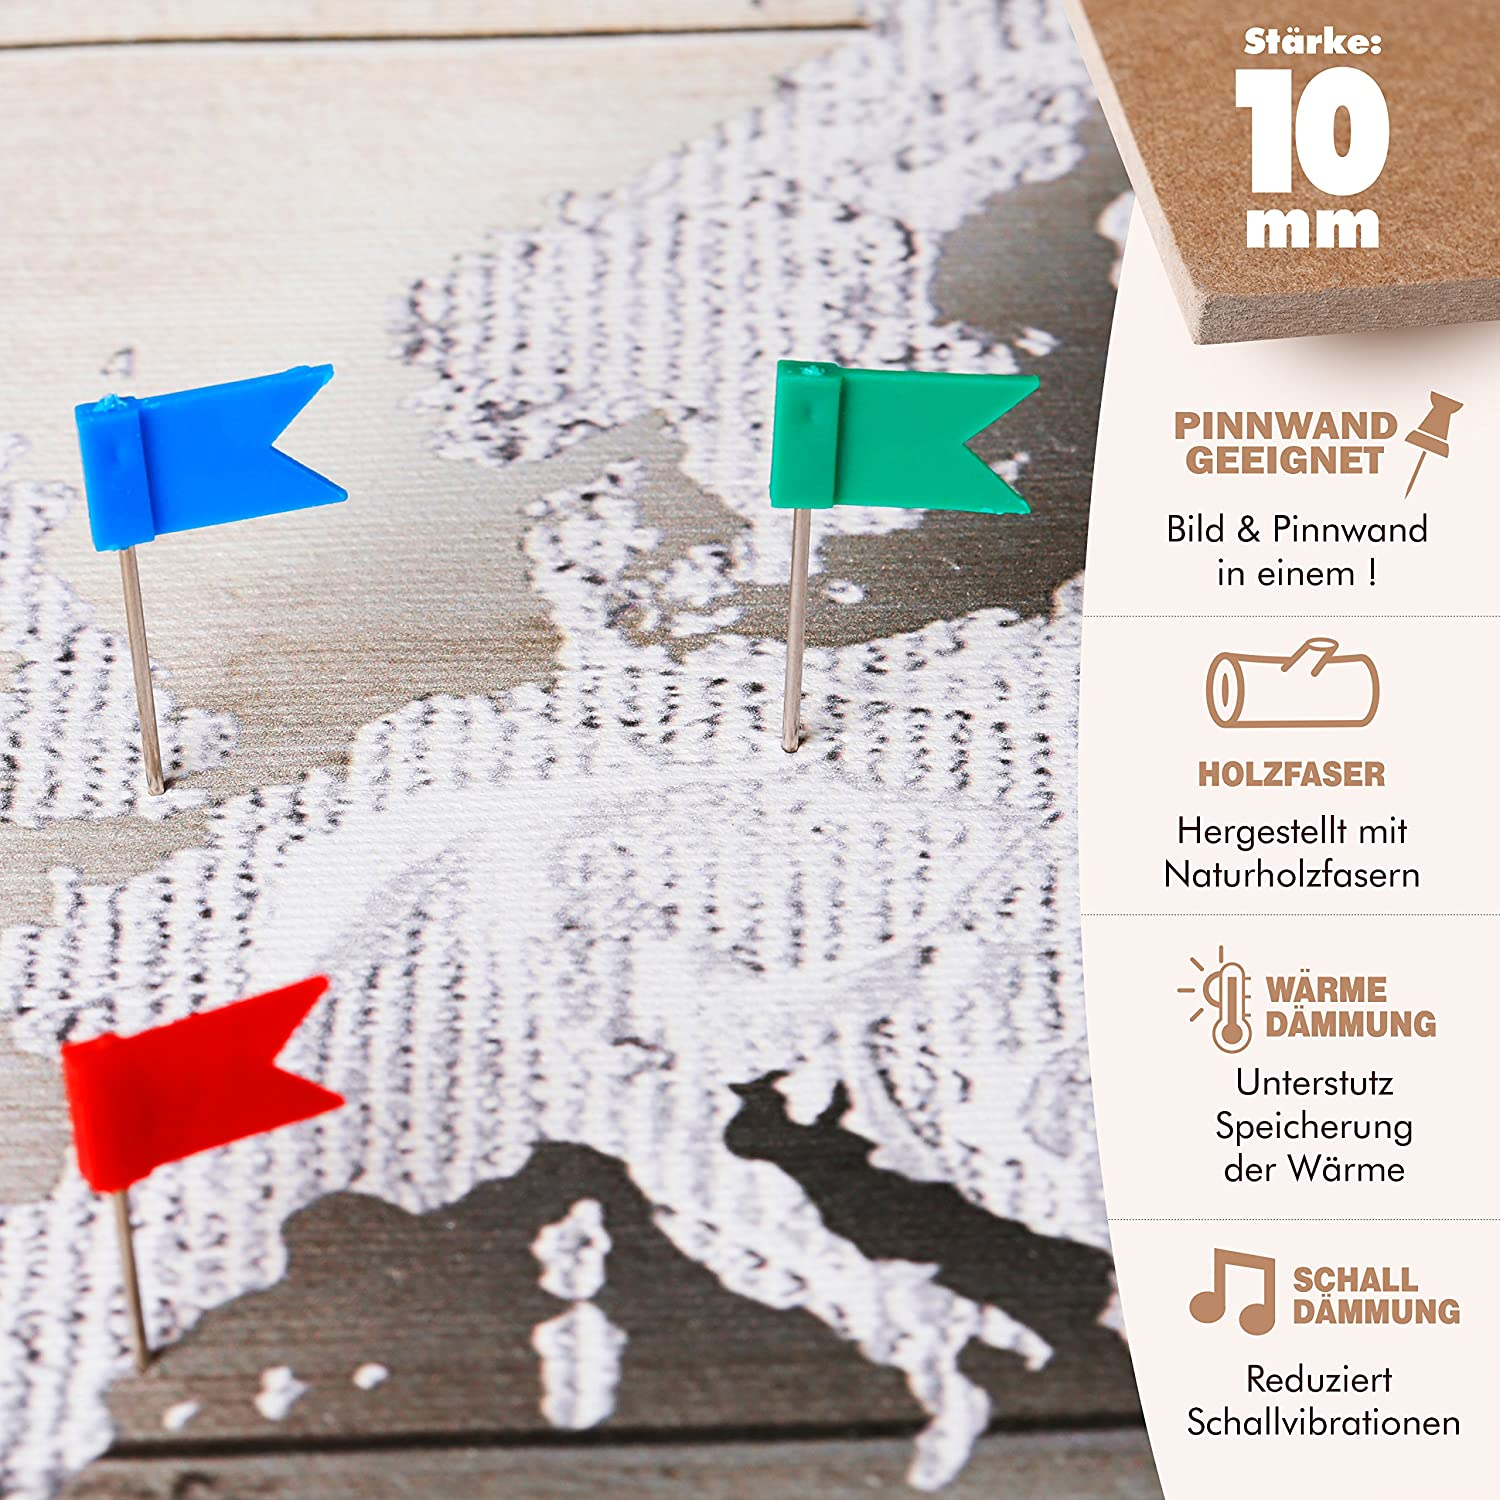 murando World map with pinboard 120x80 cm 1 Piece Print on Canvas Beaverboard Canvas Practical pinboard to Pinching Your Notes World map k-A-0130-v-a